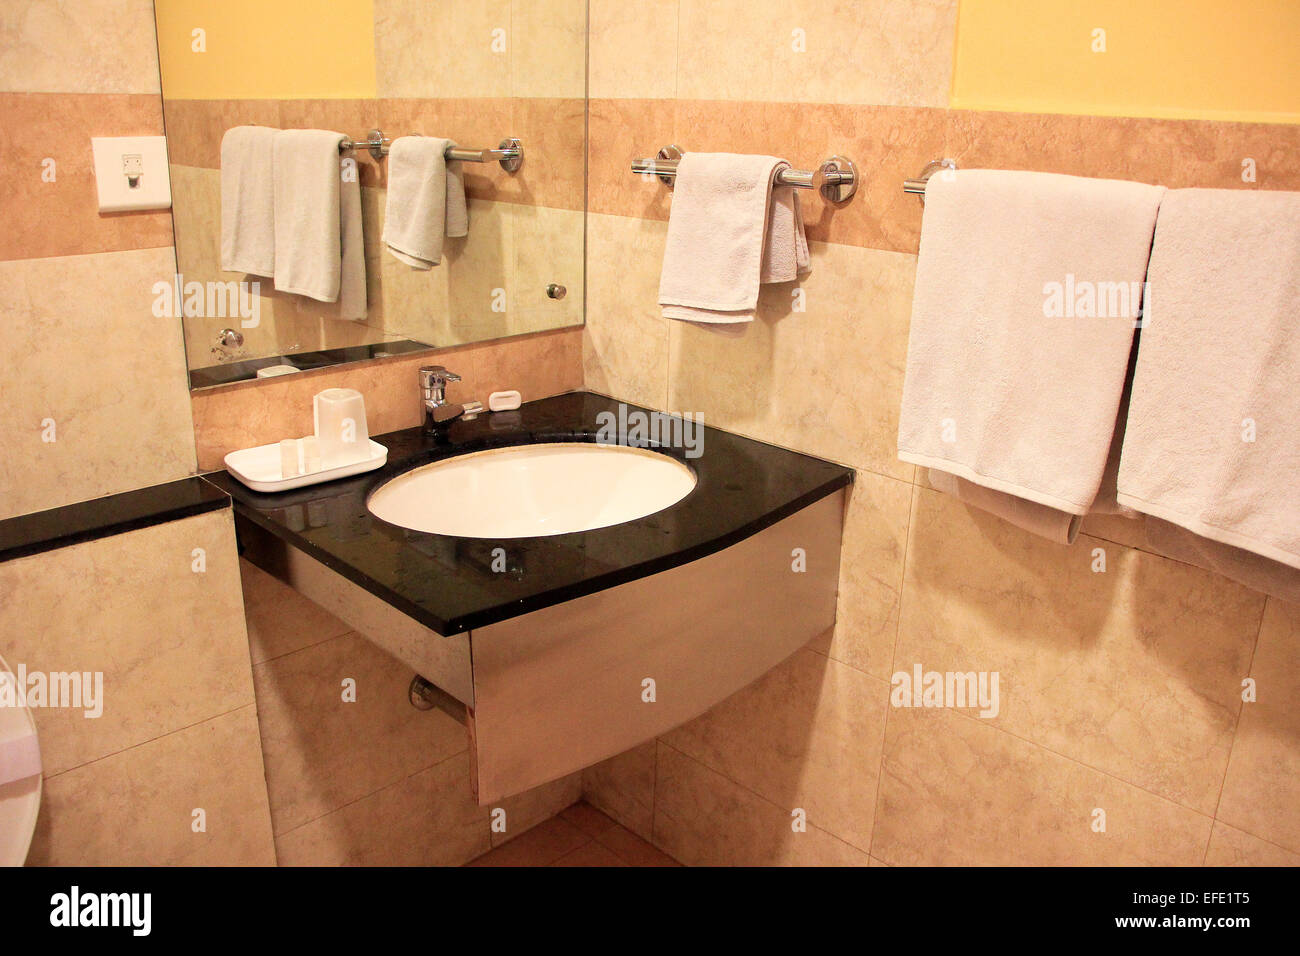 Modern bathroom furnished with wash basin, mirror and towel rods - Stock Image